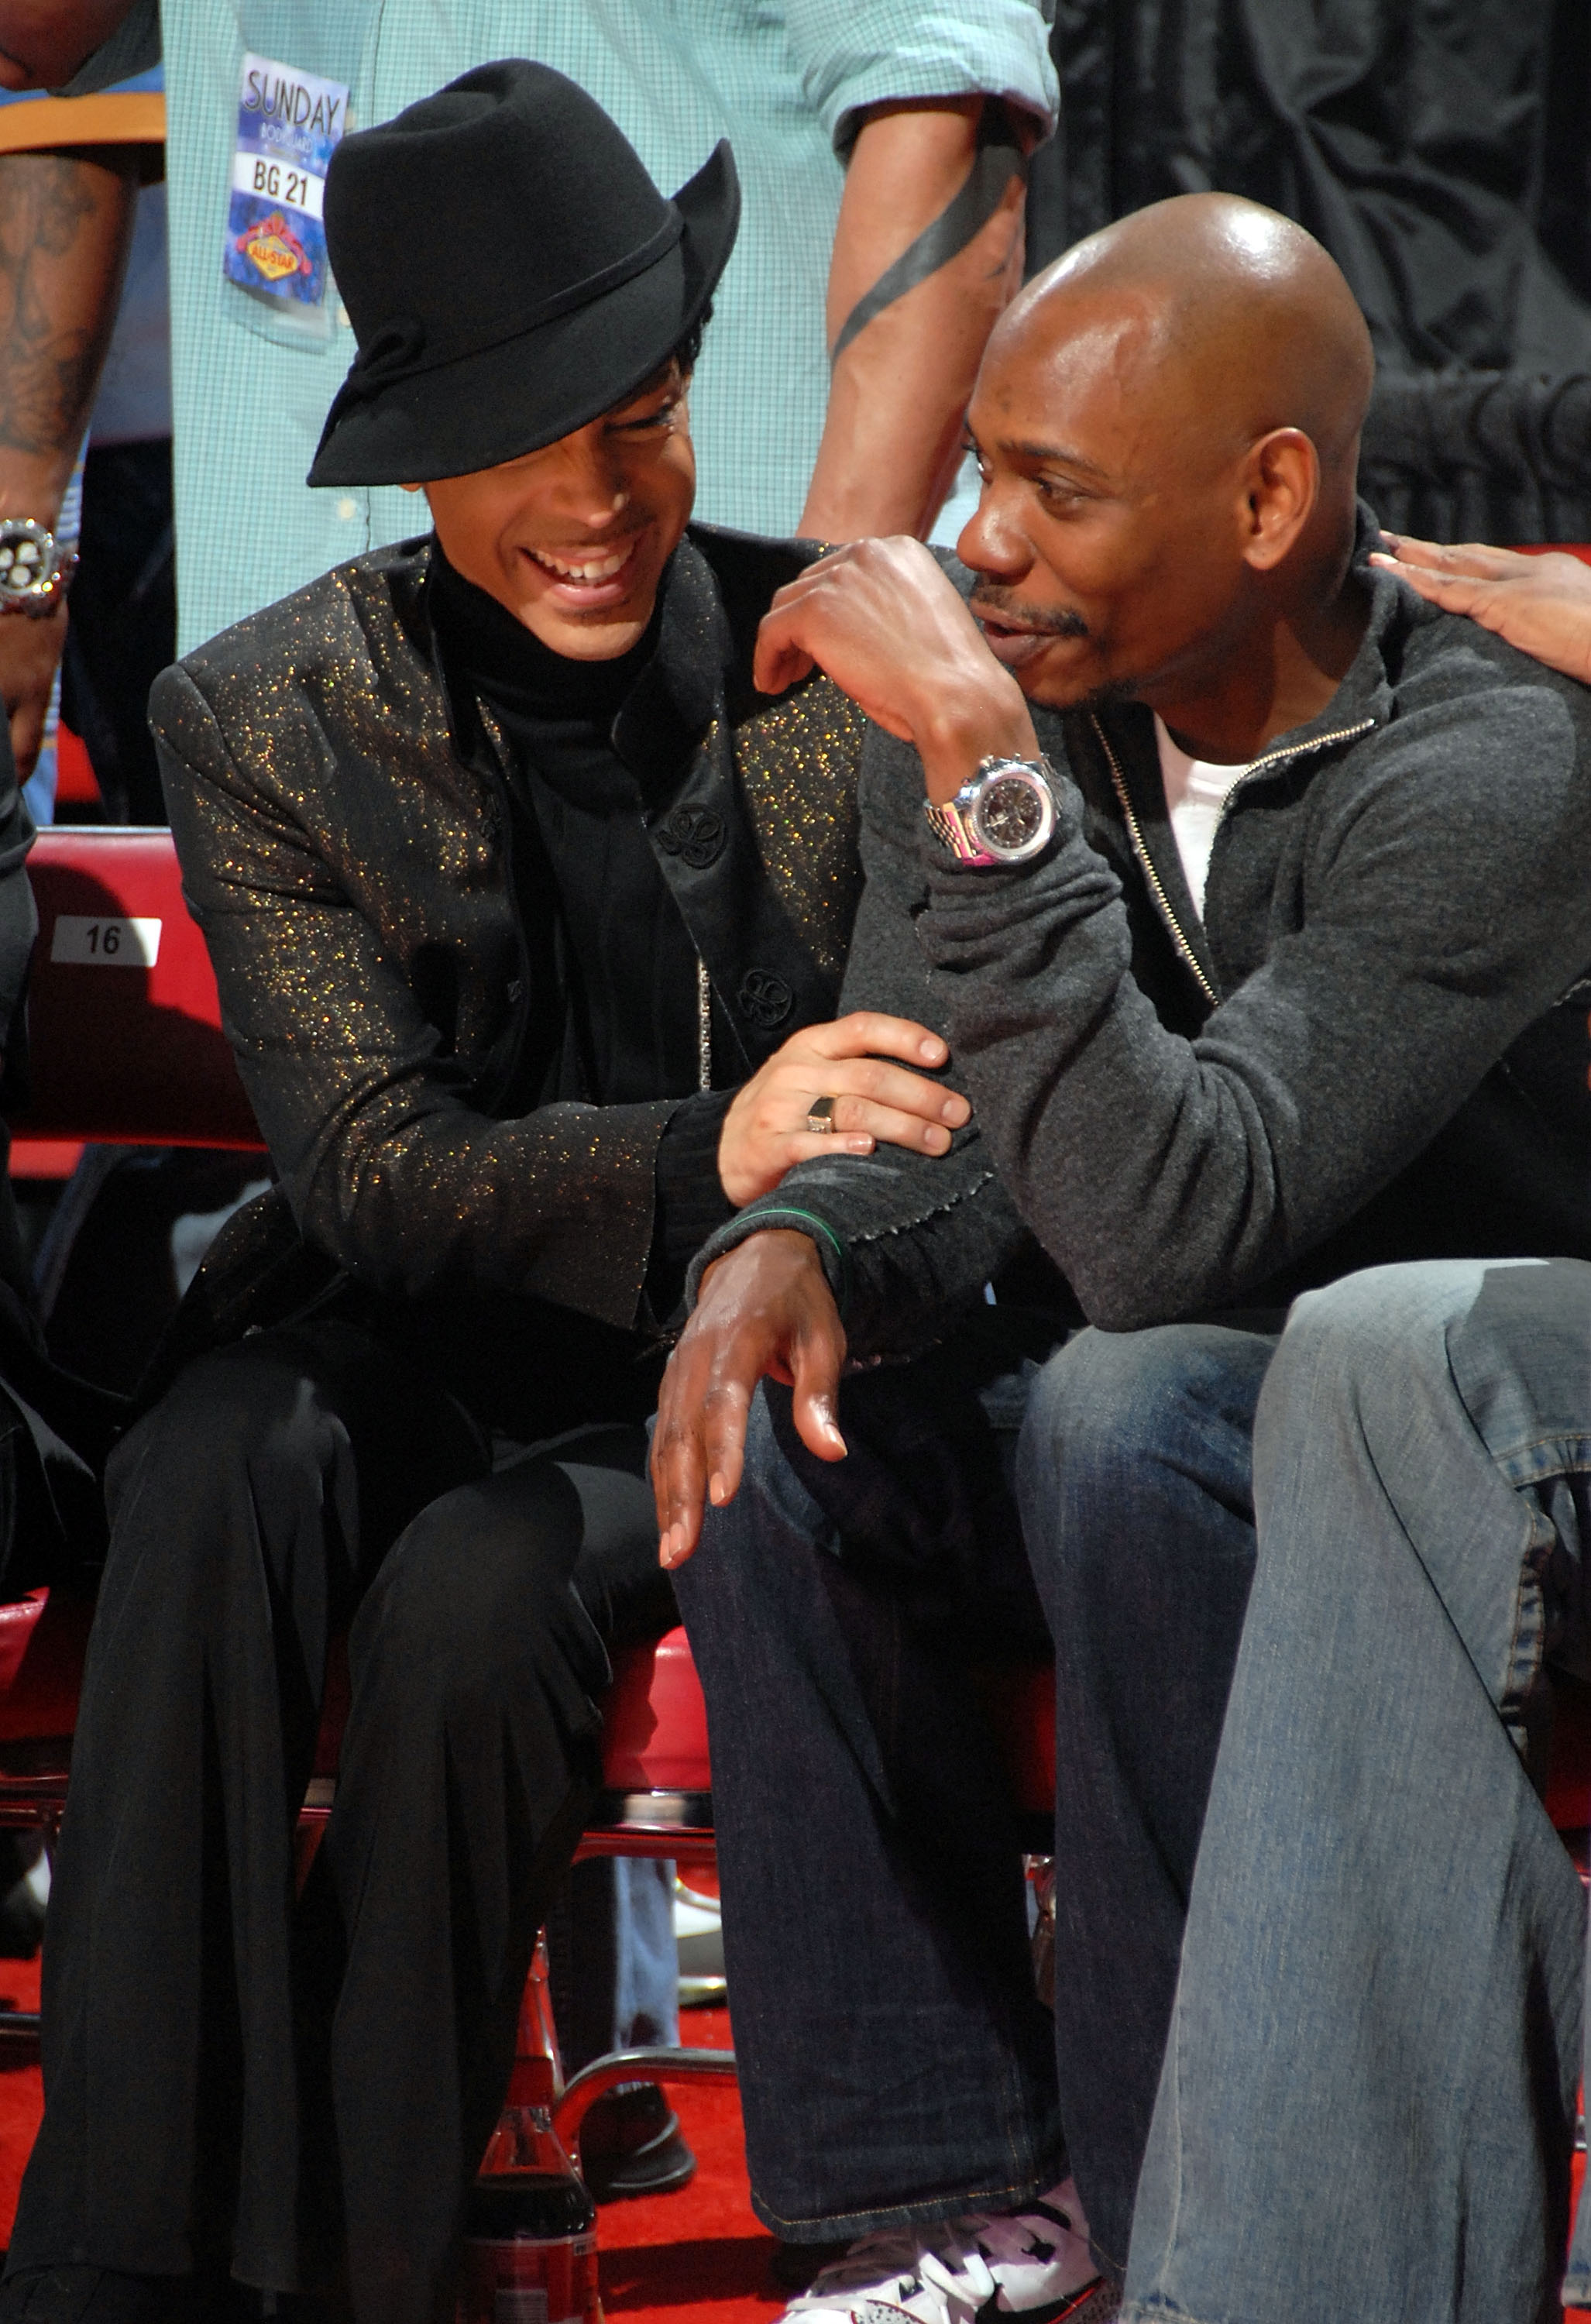 Prince with comedian Dave Chappelle at the 2007 NBA All-Star Game on Feb. 18, 2007  in Las Vegas.